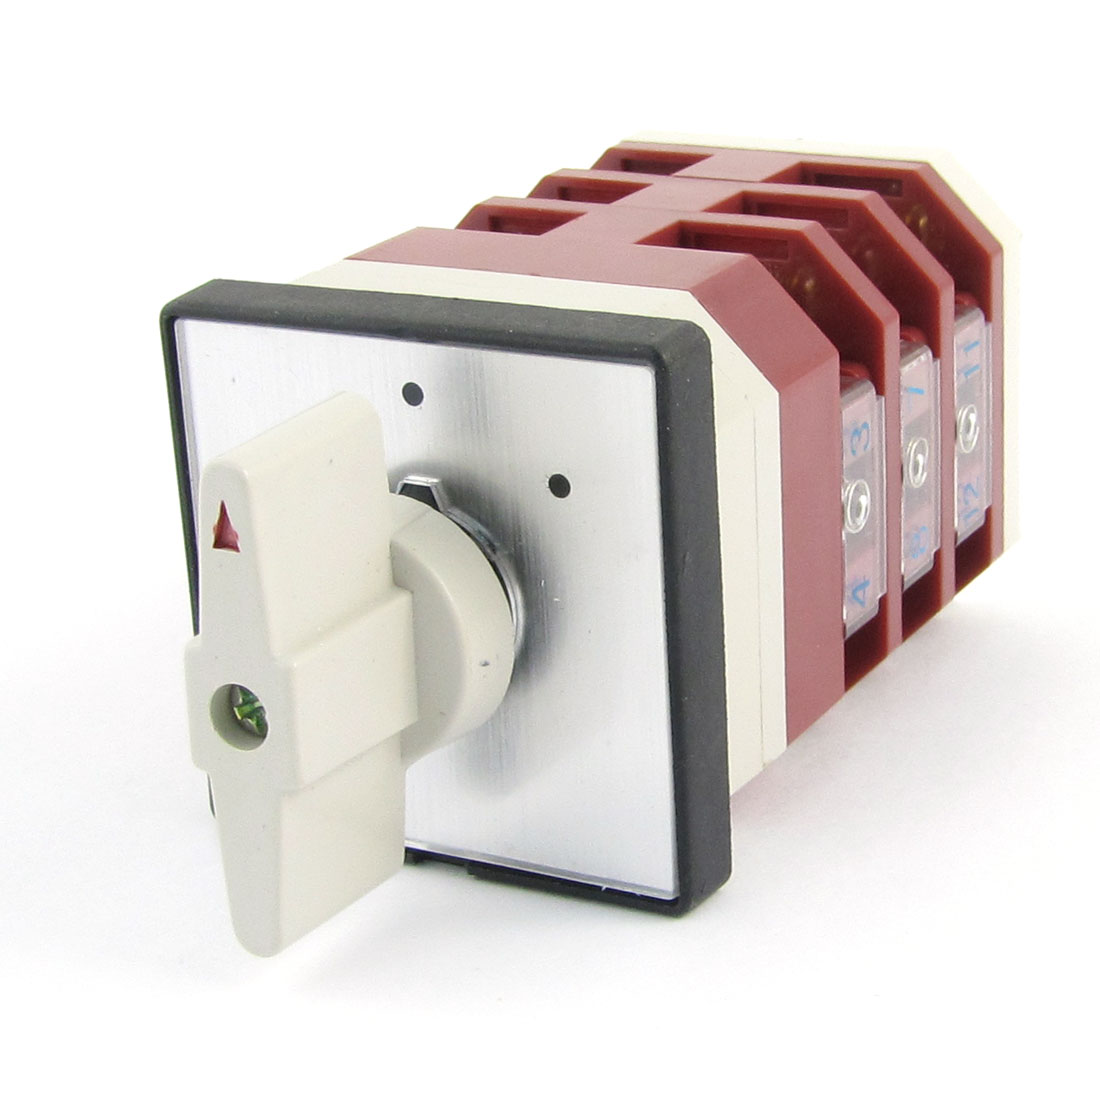 Ui500V Ith16A On-Off-On 12 Terminals 3 Position Universal Changeover Switch